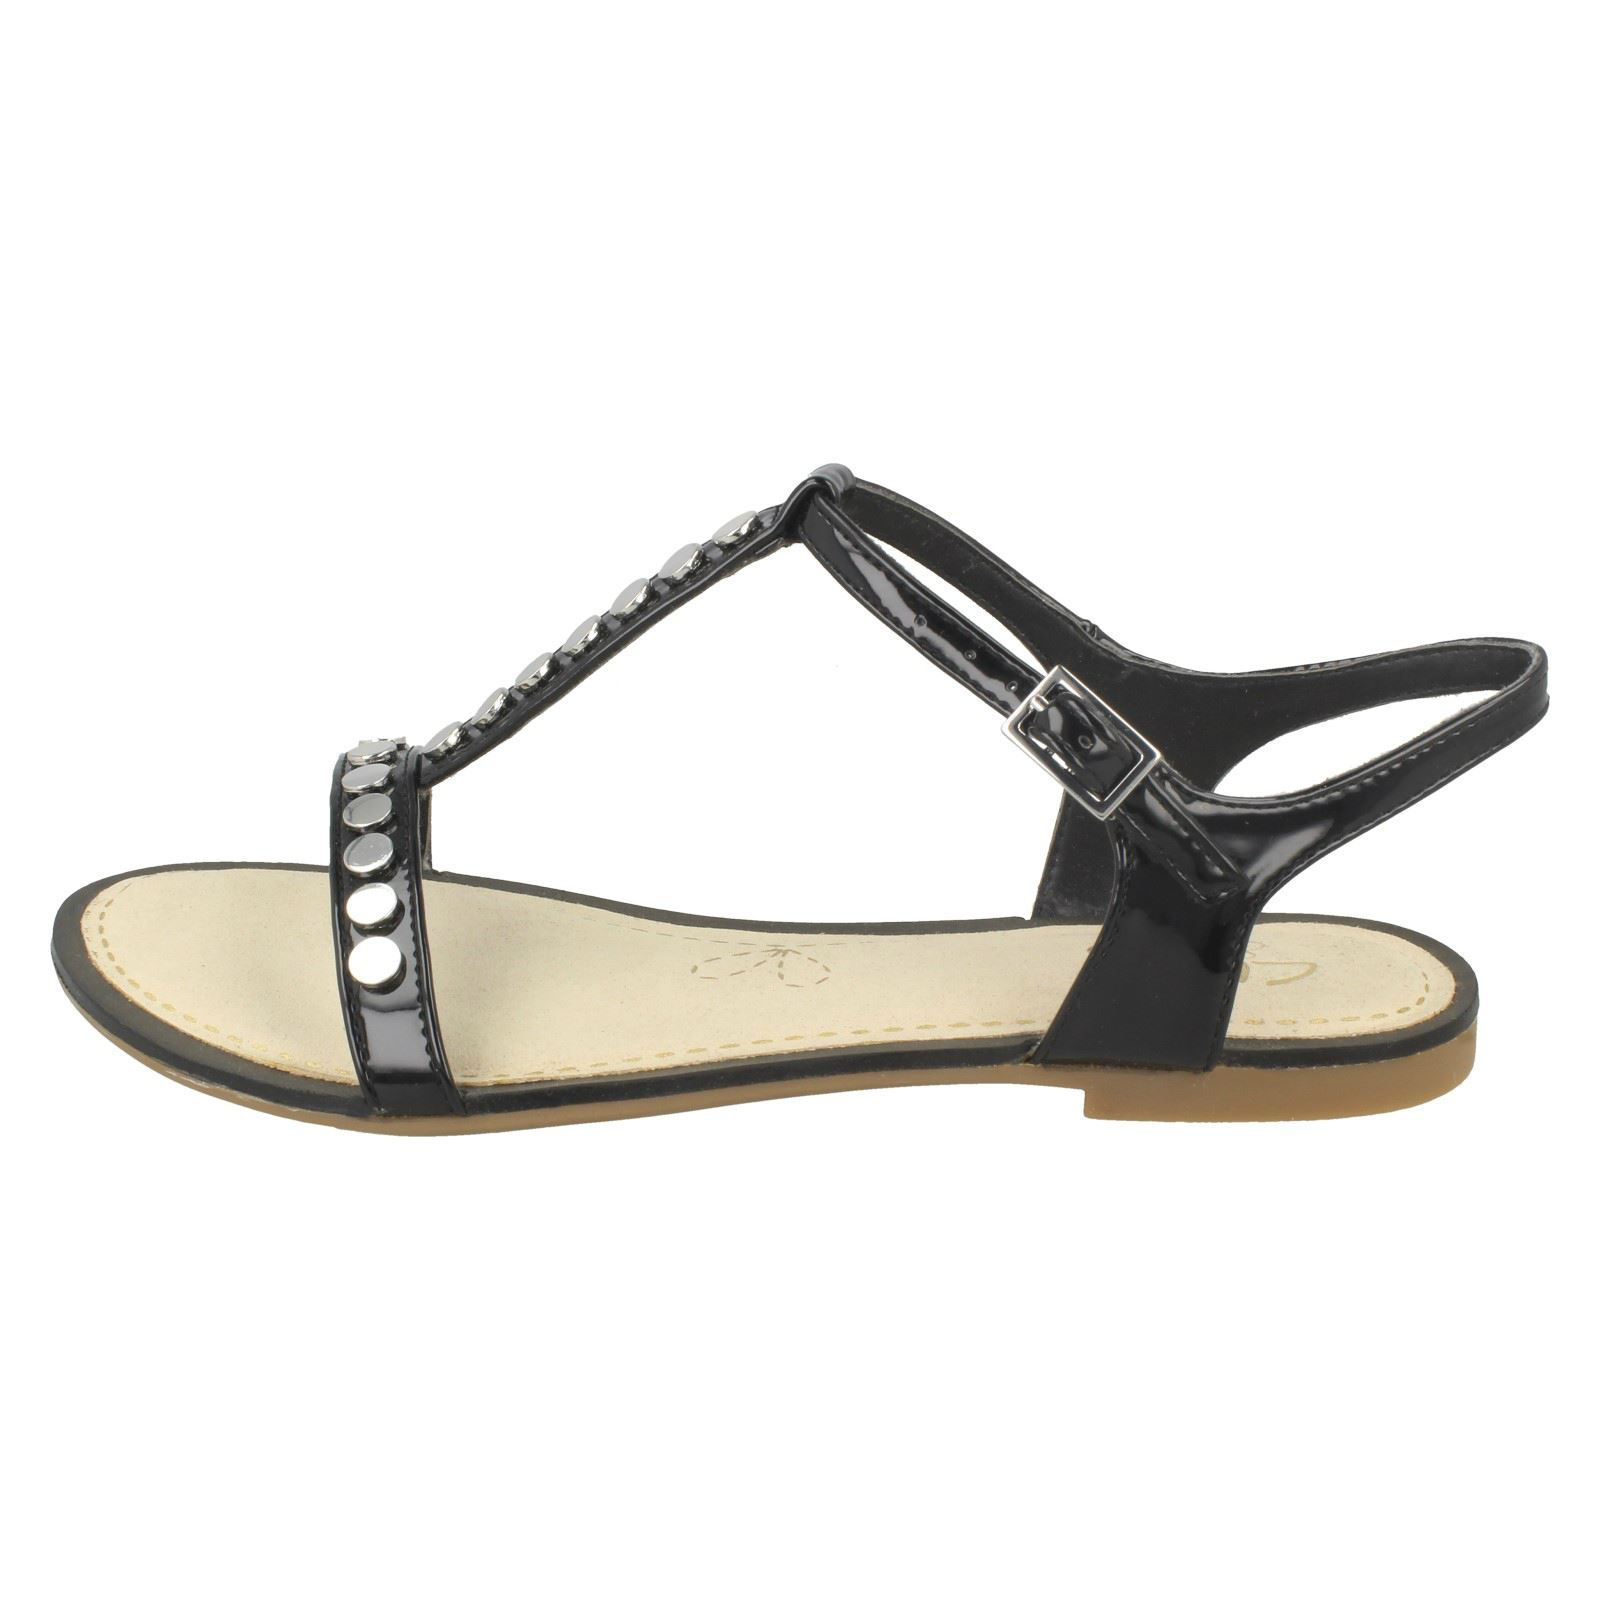 a8088f61a Ladies Clarks Flat Studded Buckled Summer Sandals Sail Festival 3 UK Black  D. About this product. Picture 1 of 10  Picture 2 of 10  Picture 3 of 10 ...